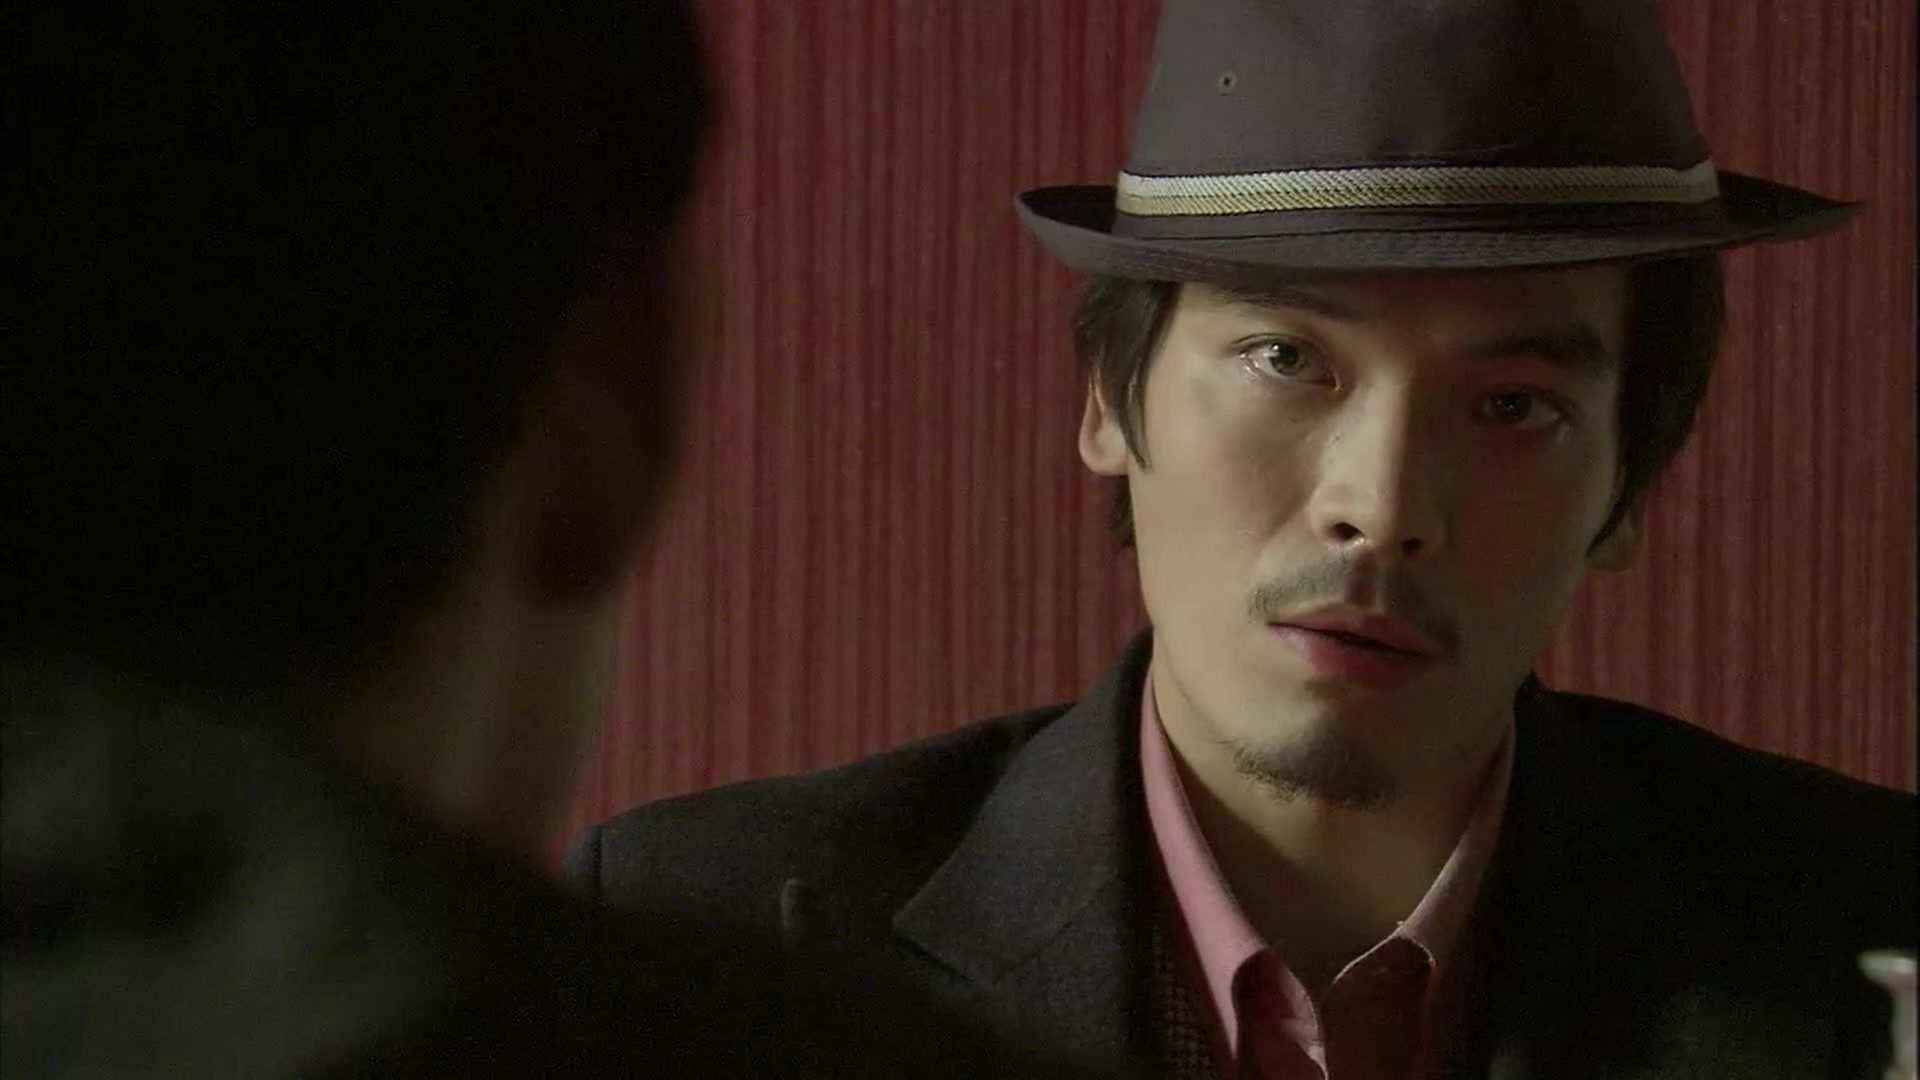 inspiring-generation Episode17- Highlight-01: Inspiring Generation